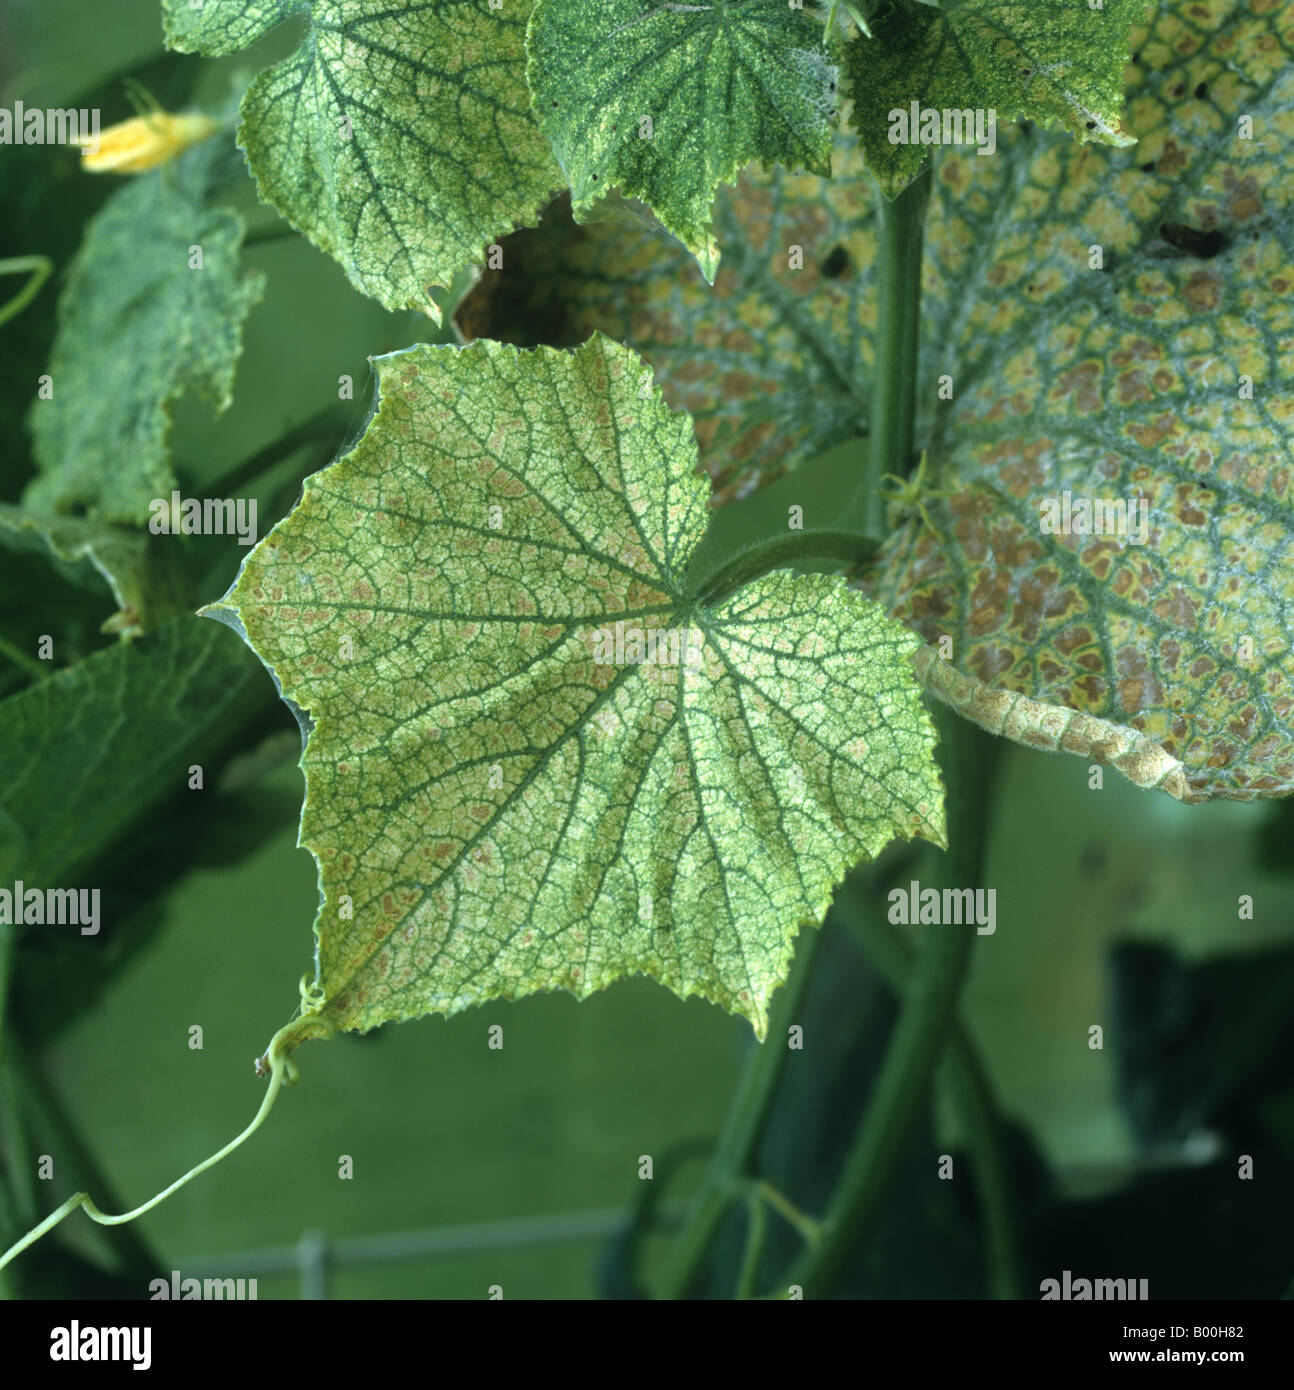 studies on tetranychus urticae two spotted spider mite Different populations of two spotted spider mite, tetranychus urticae koch, (acari: tetranychidae) on cucumber in jordan this study showed the results of.